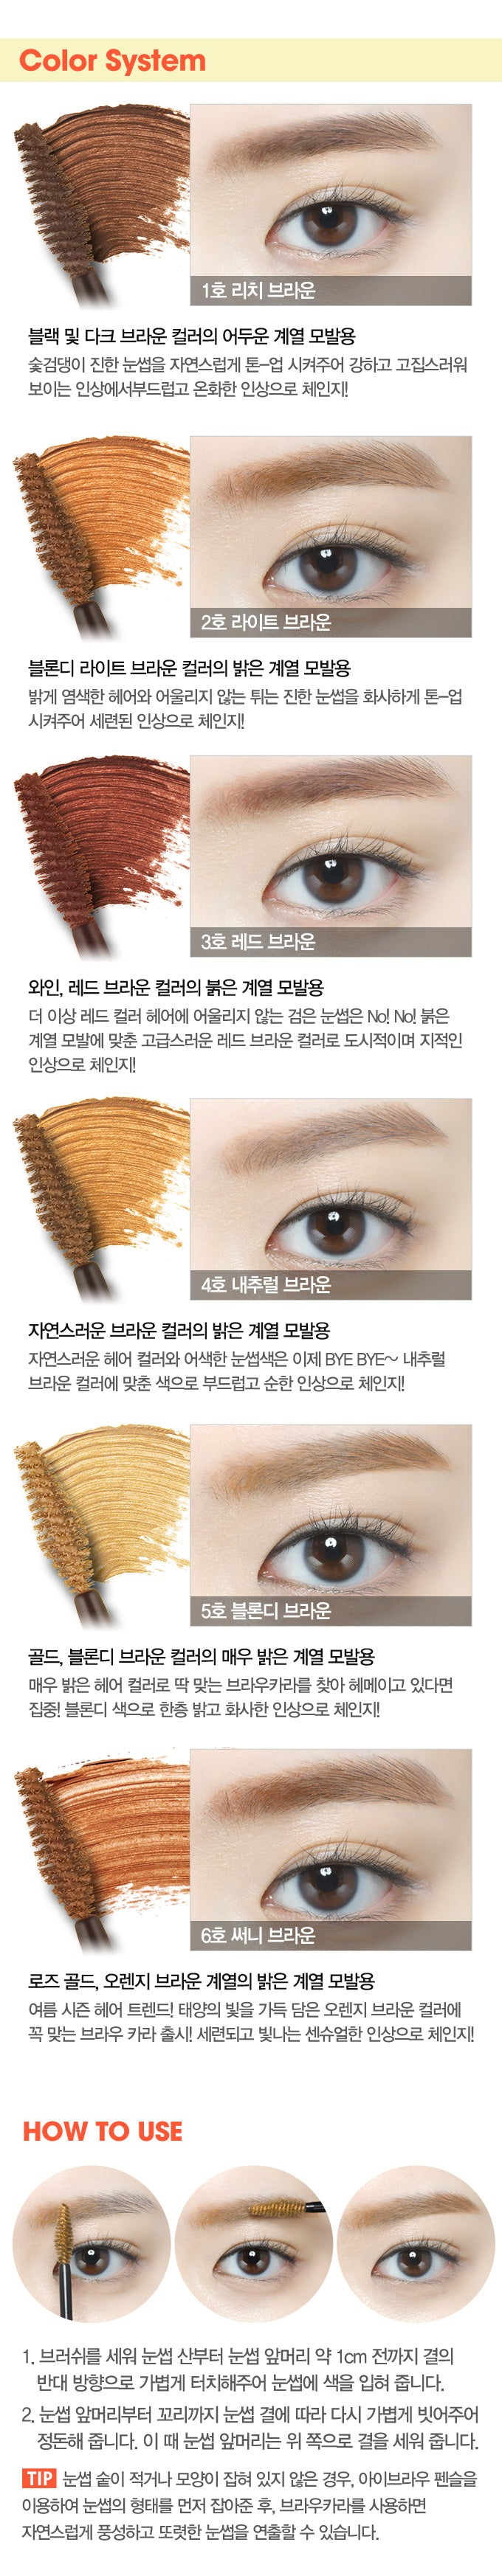 Etude House Color My Brows Mascara 03 Red Brown